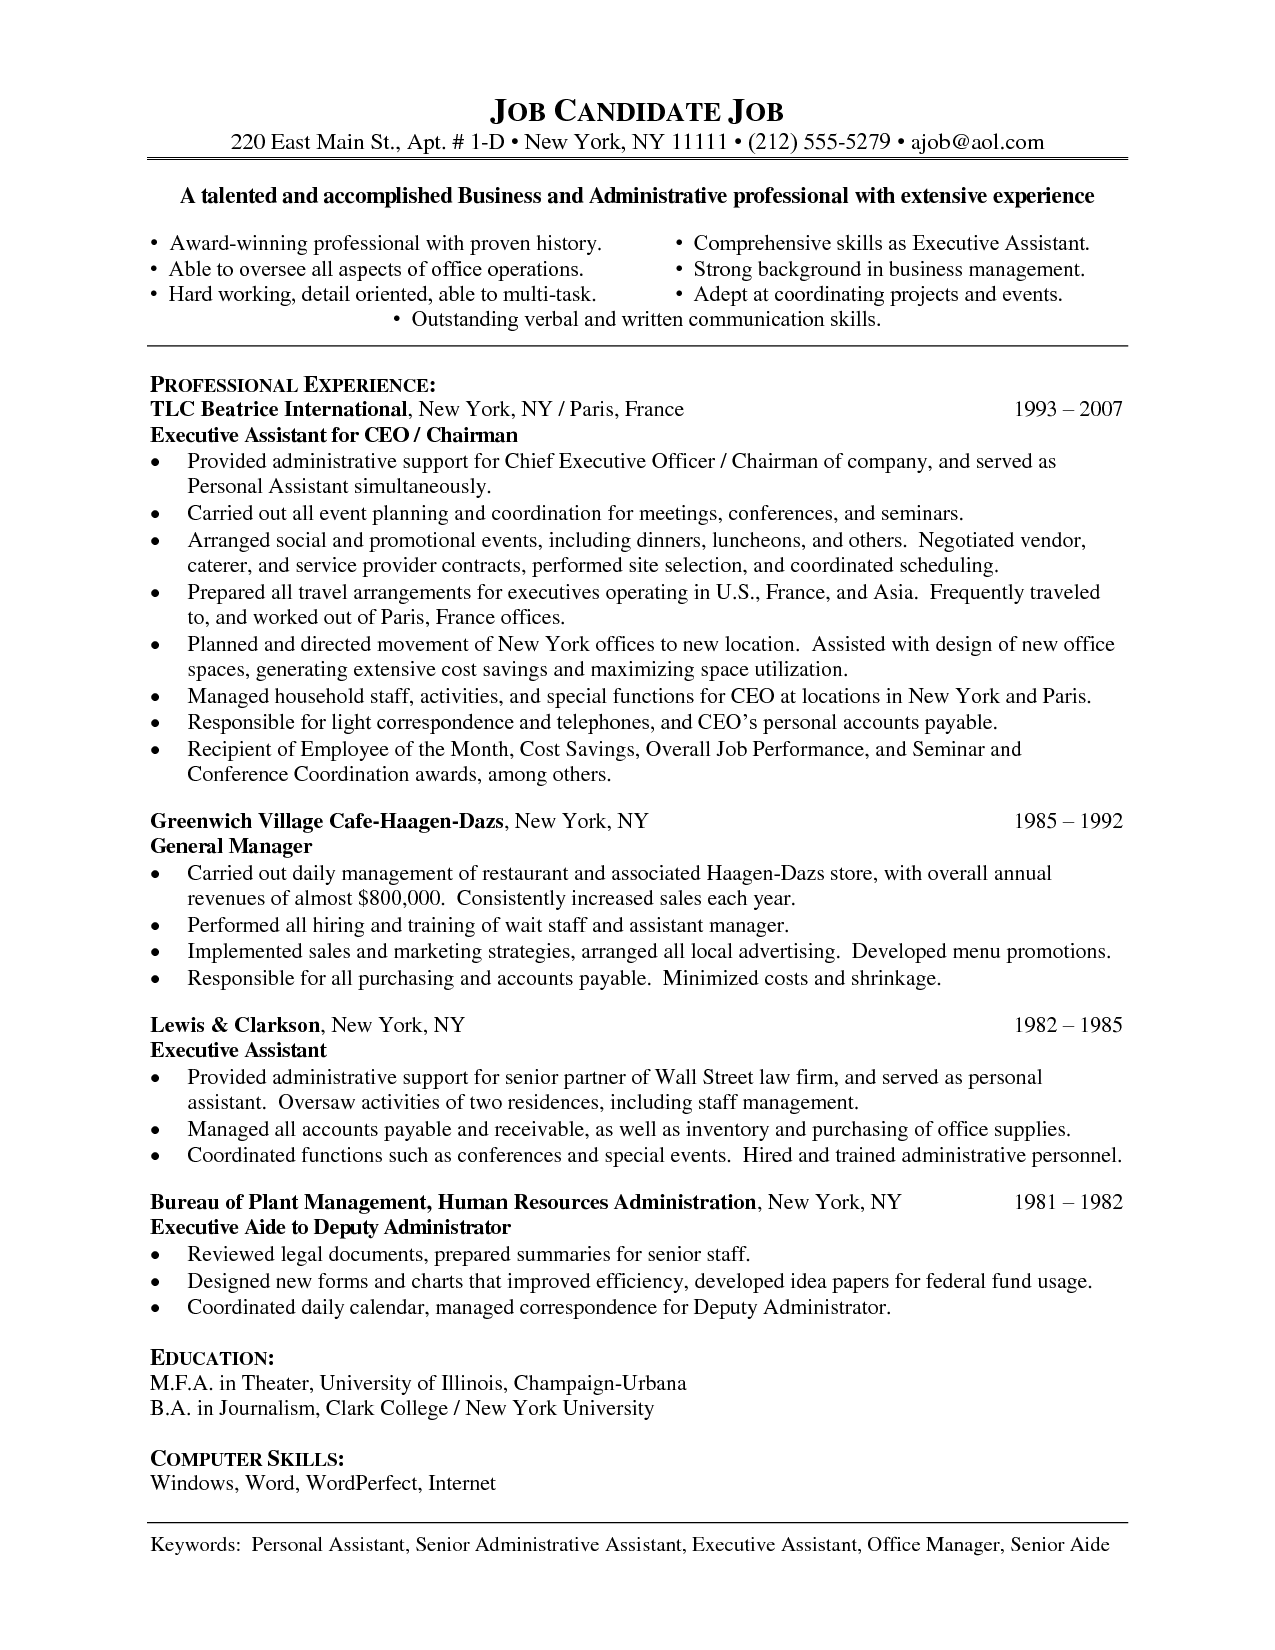 Personal Marketing Resume Administrative Functional Resume Google Search